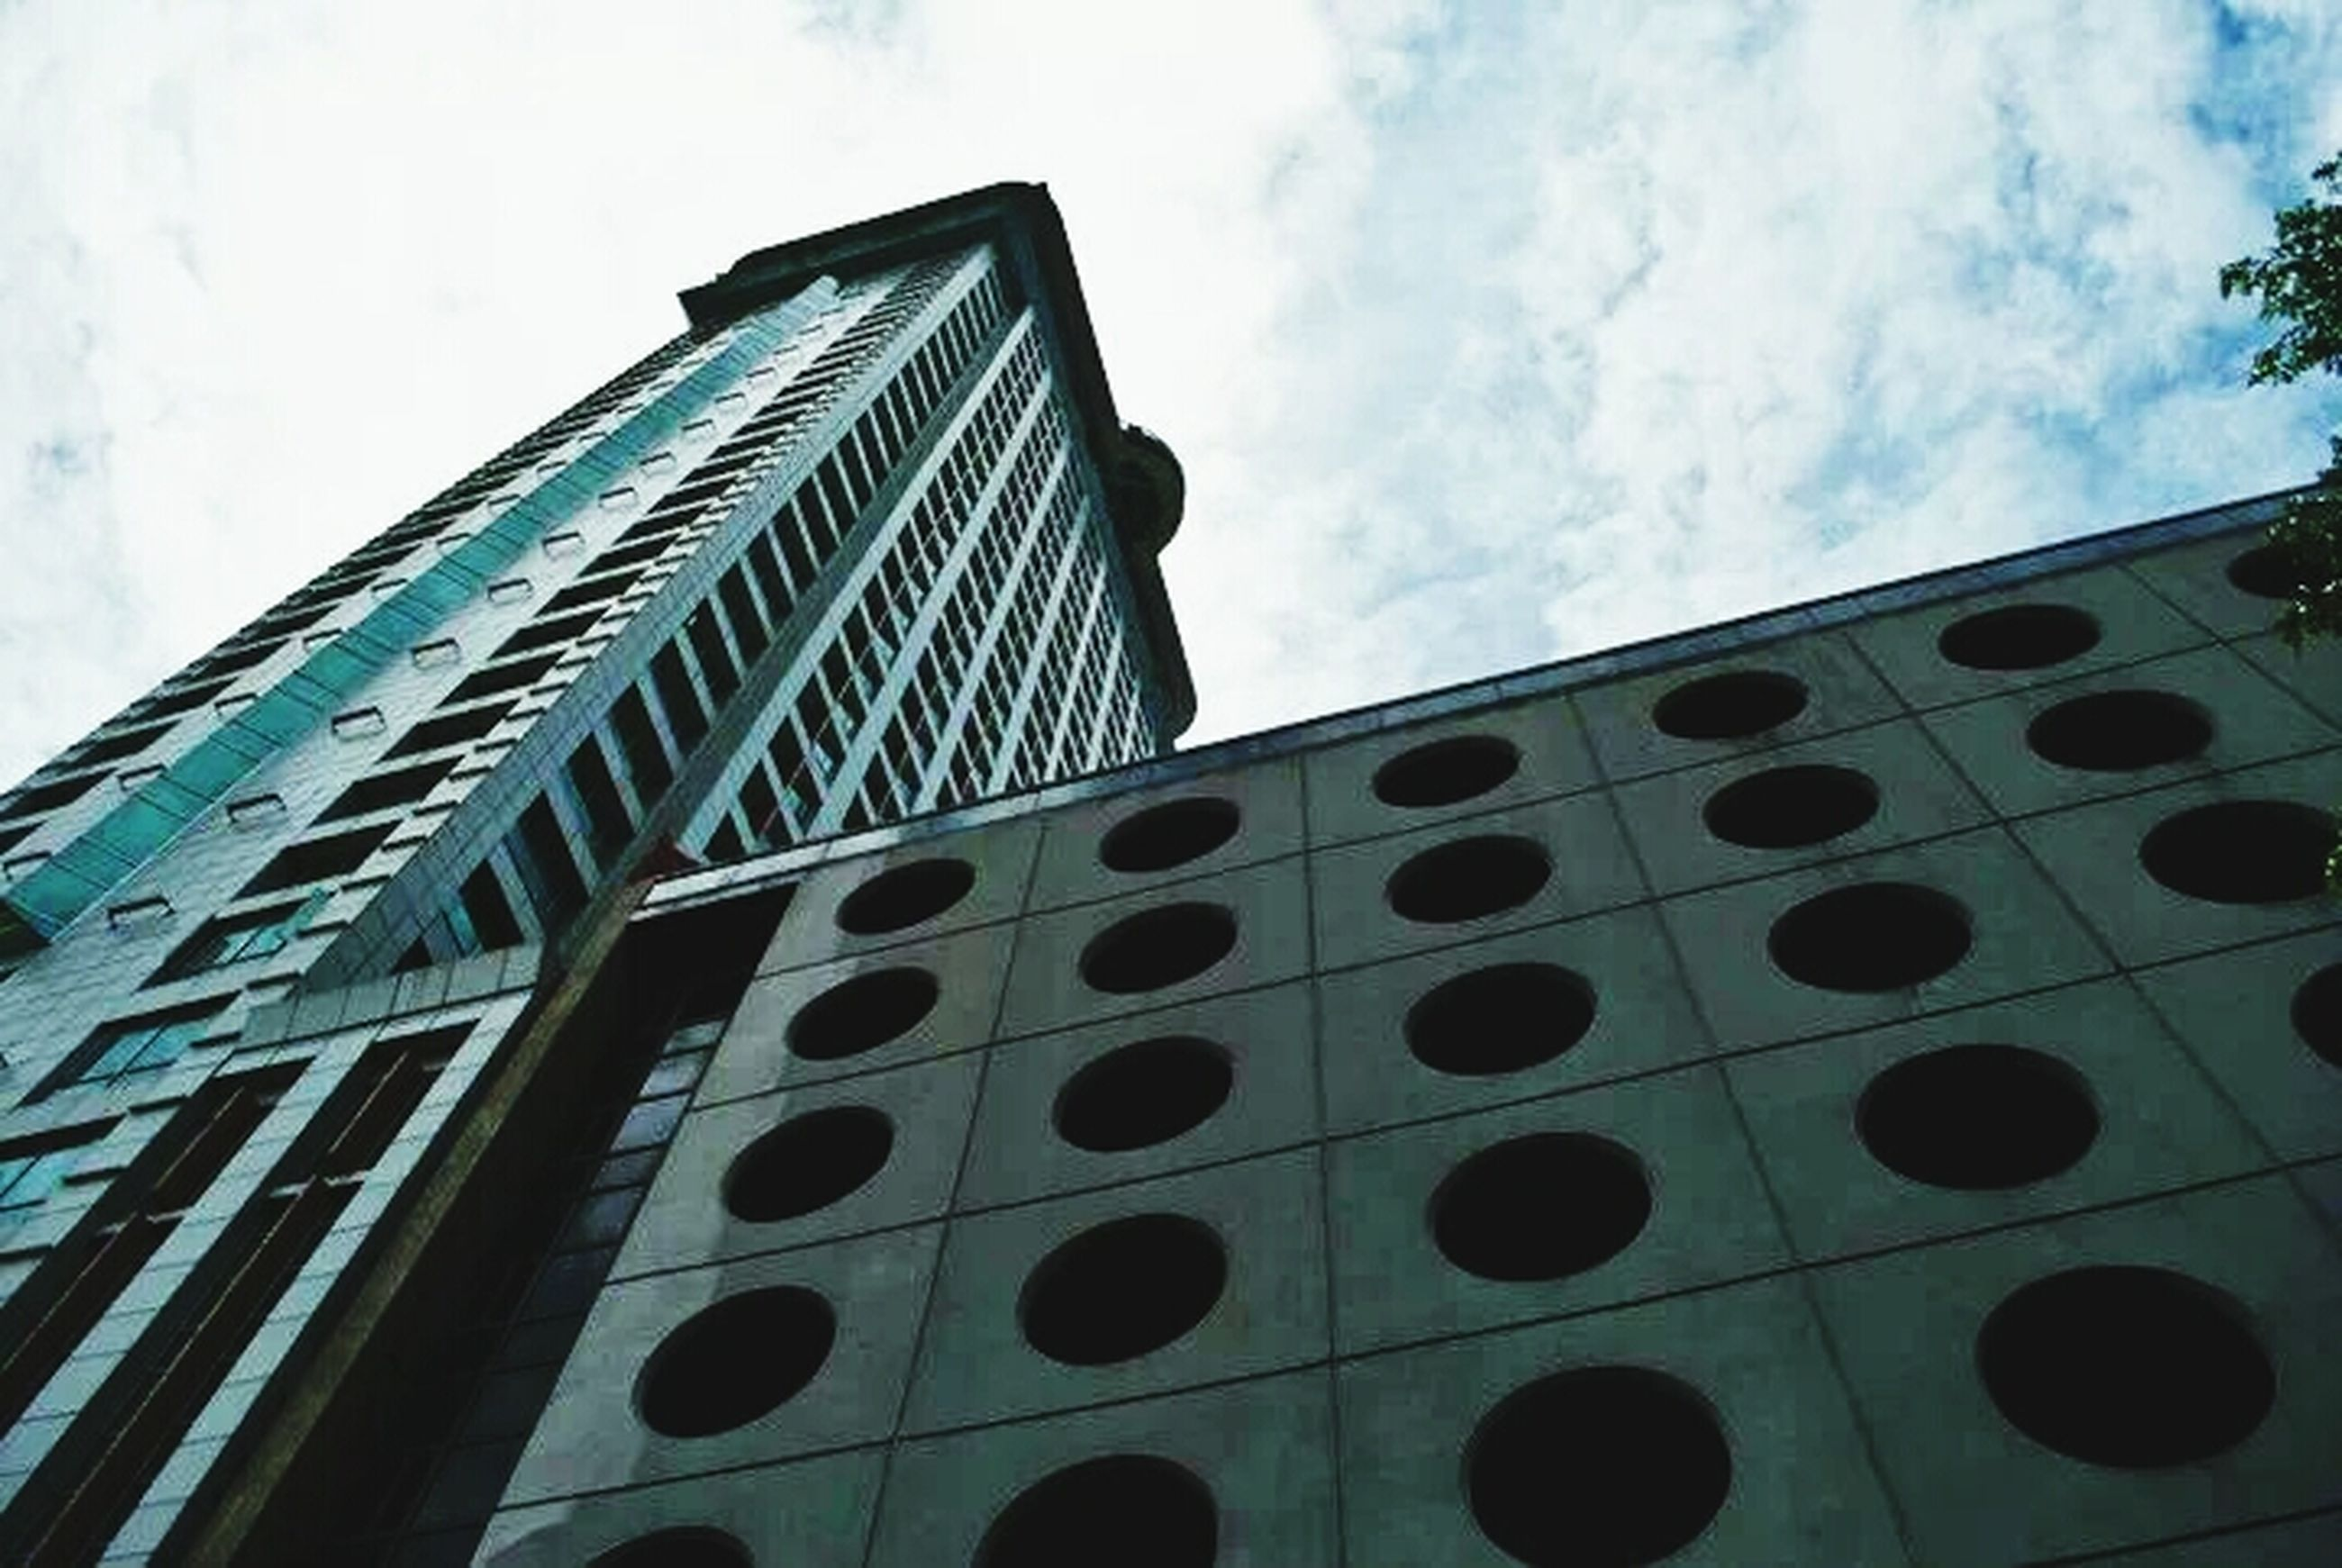 low angle view, architecture, built structure, building exterior, sky, building, modern, window, cloud - sky, glass - material, tall - high, tower, office building, pattern, city, day, no people, outdoors, cloud, architectural feature